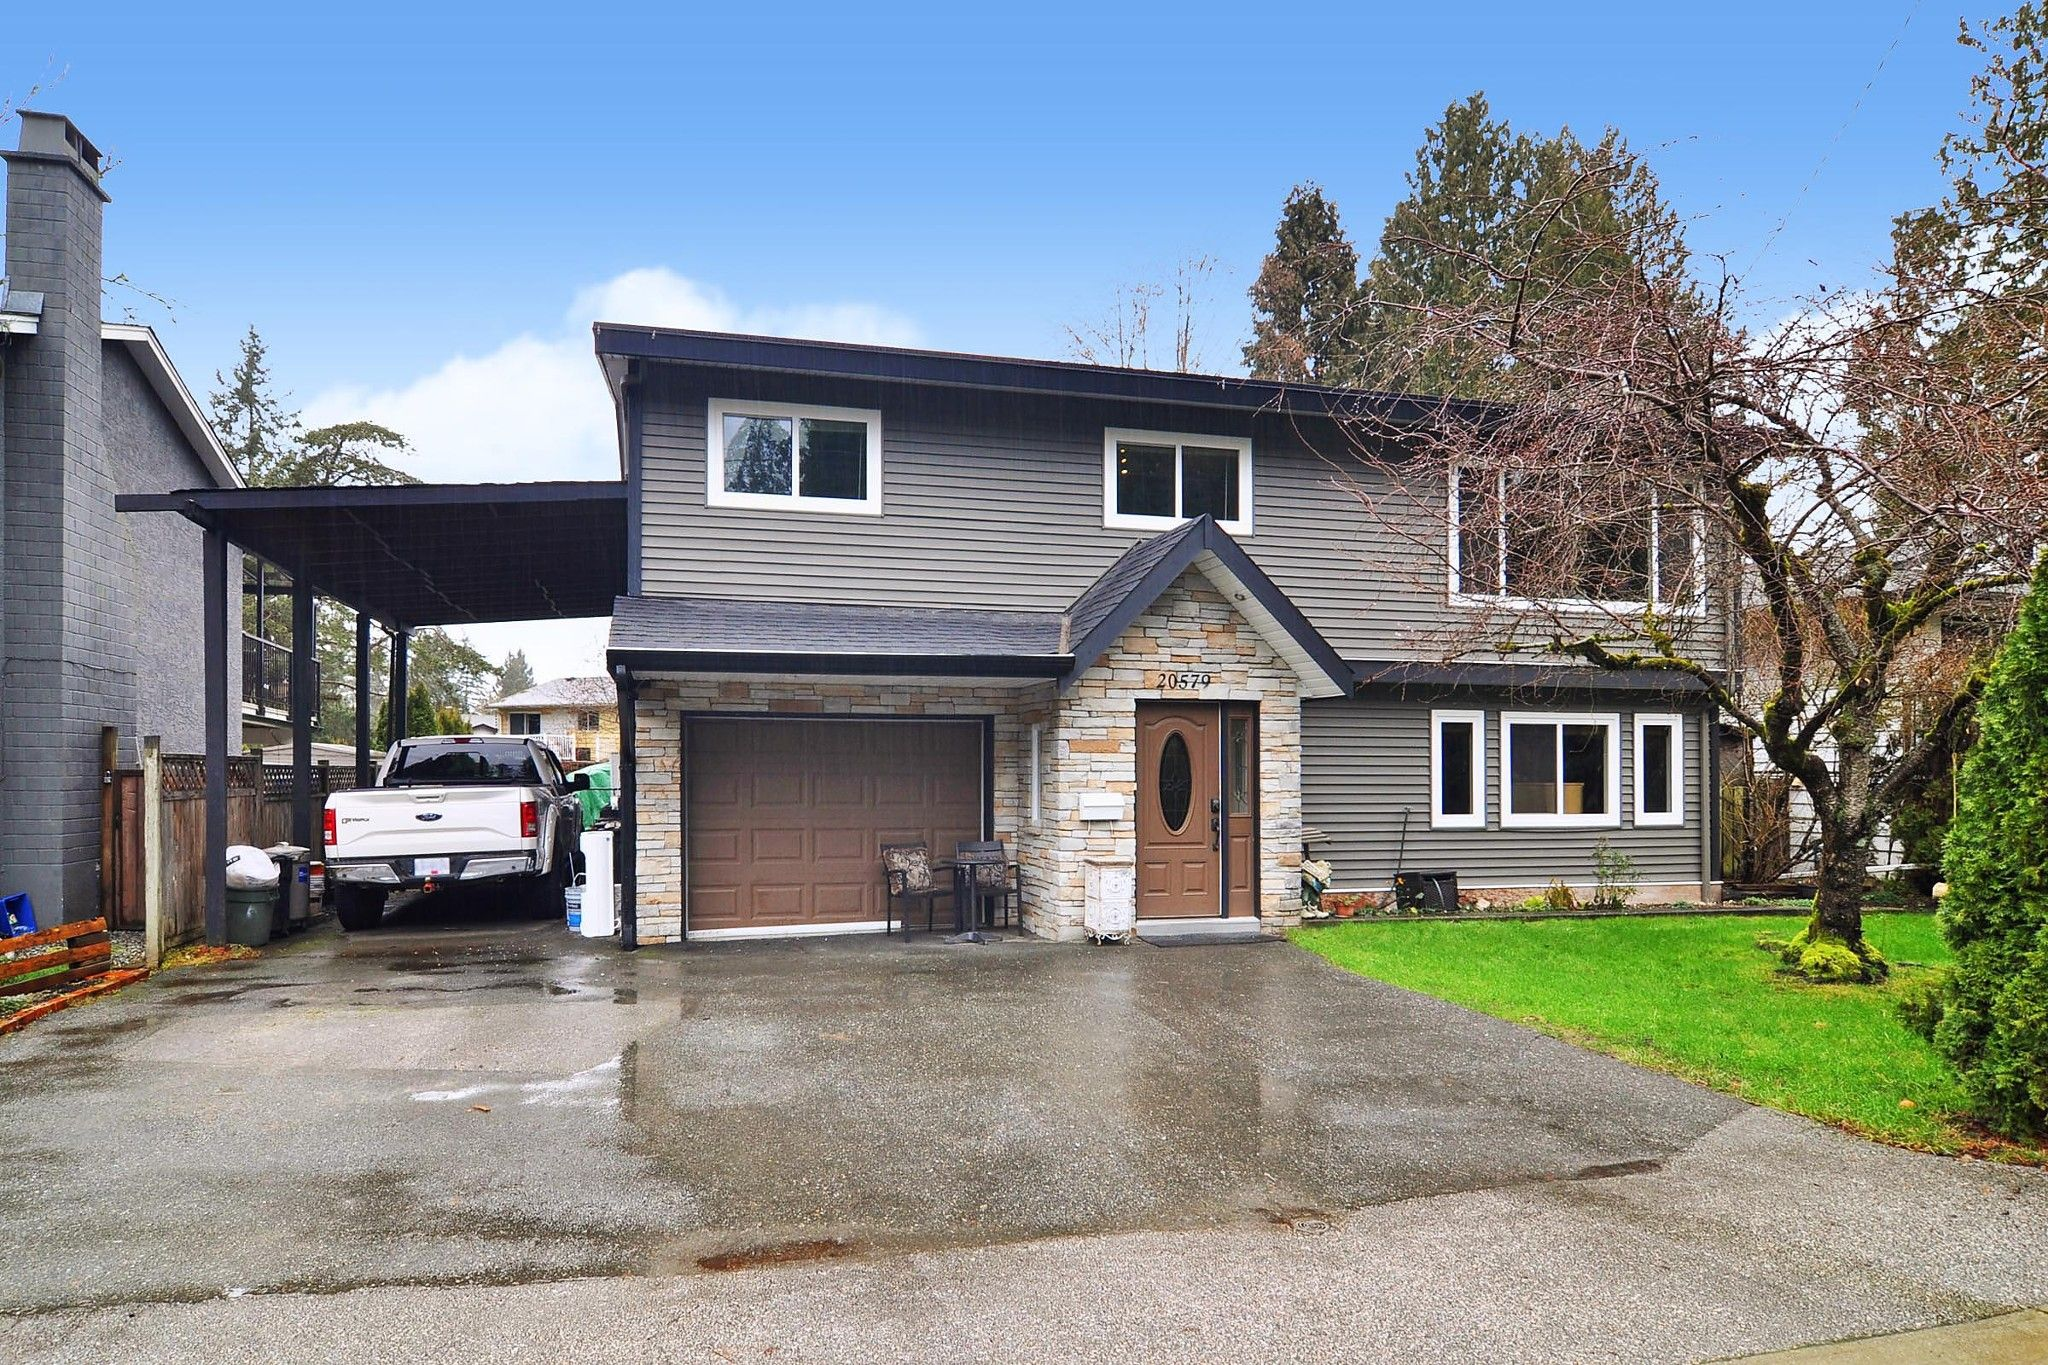 """Main Photo: 20579 48 Avenue in Langley: Langley City House for sale in """"CITY PARK"""" : MLS®# R2534964"""